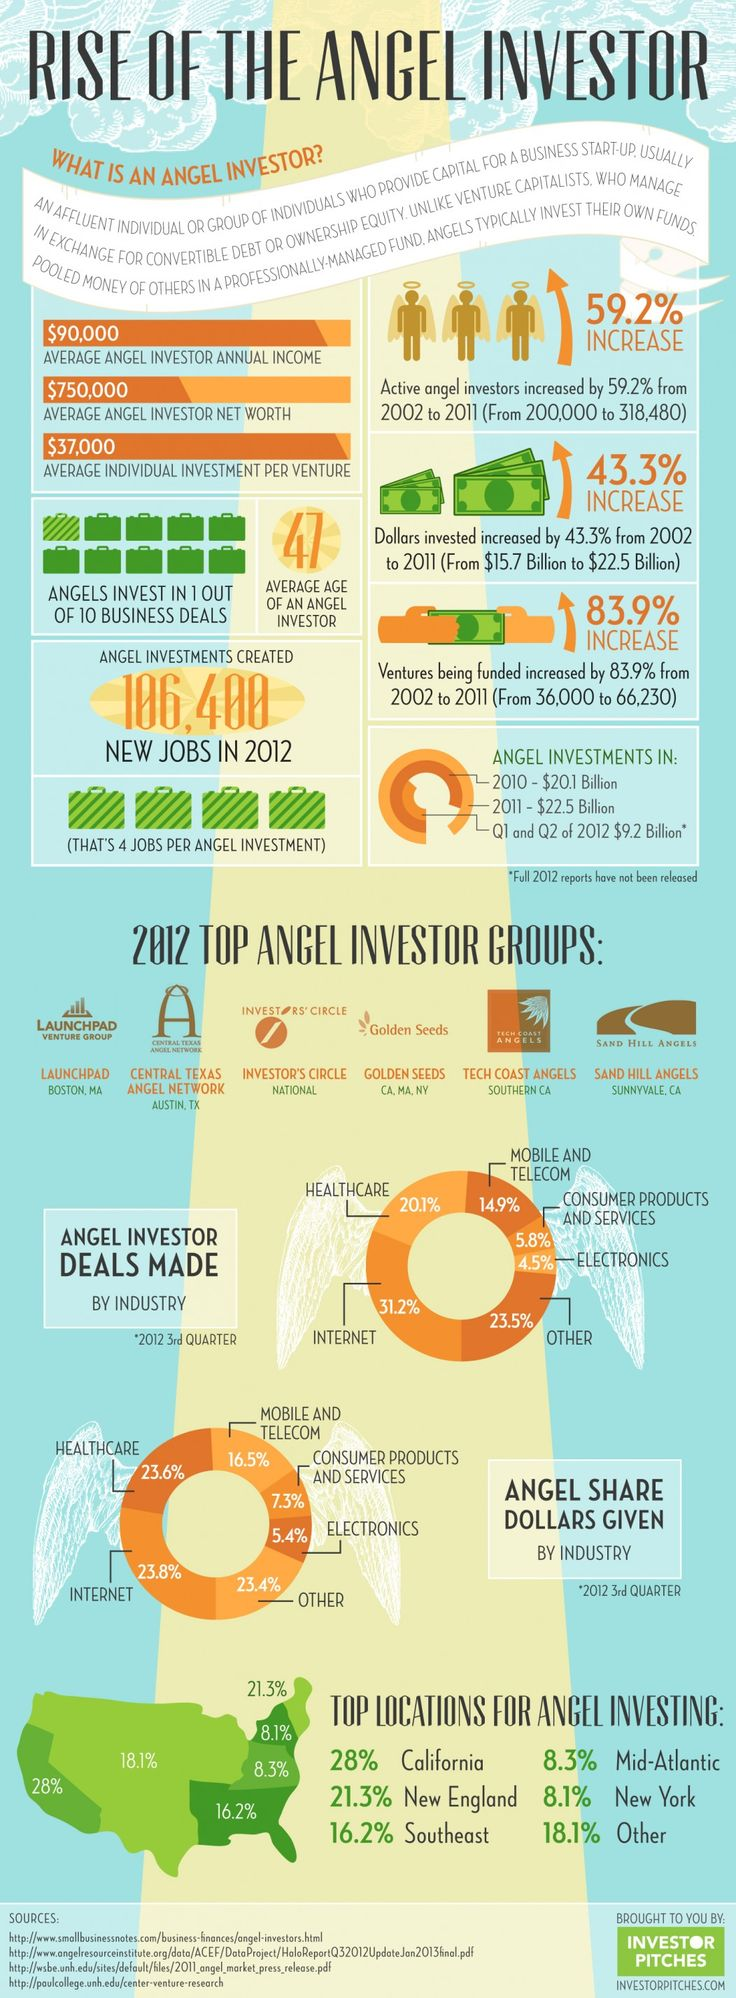 The rise of the angel investor (infographic)